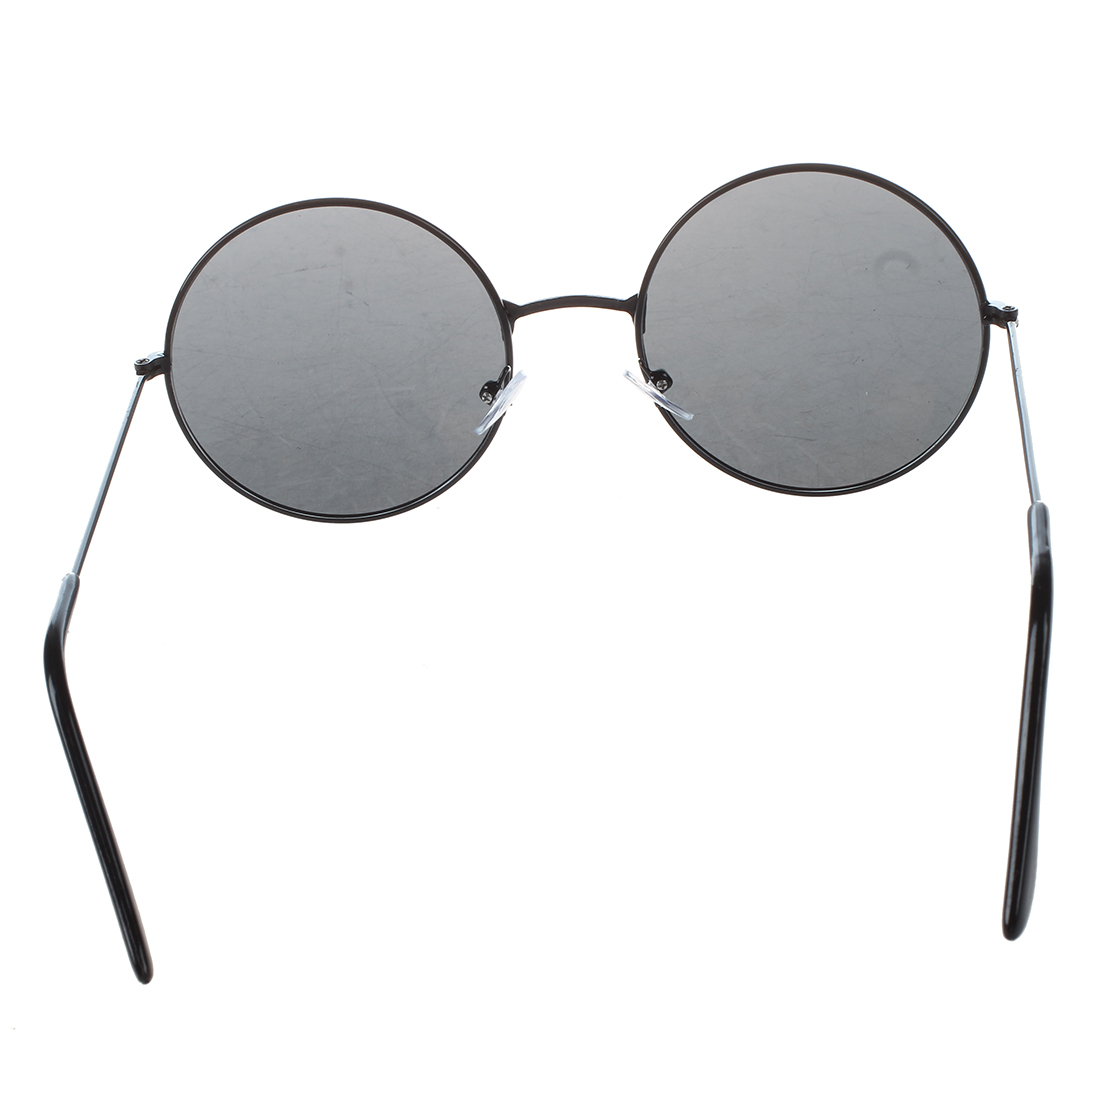 d6db22ef1 Trendy Men Women Metal Frame Black Lens Round Sunglasses Glasses Eyewear